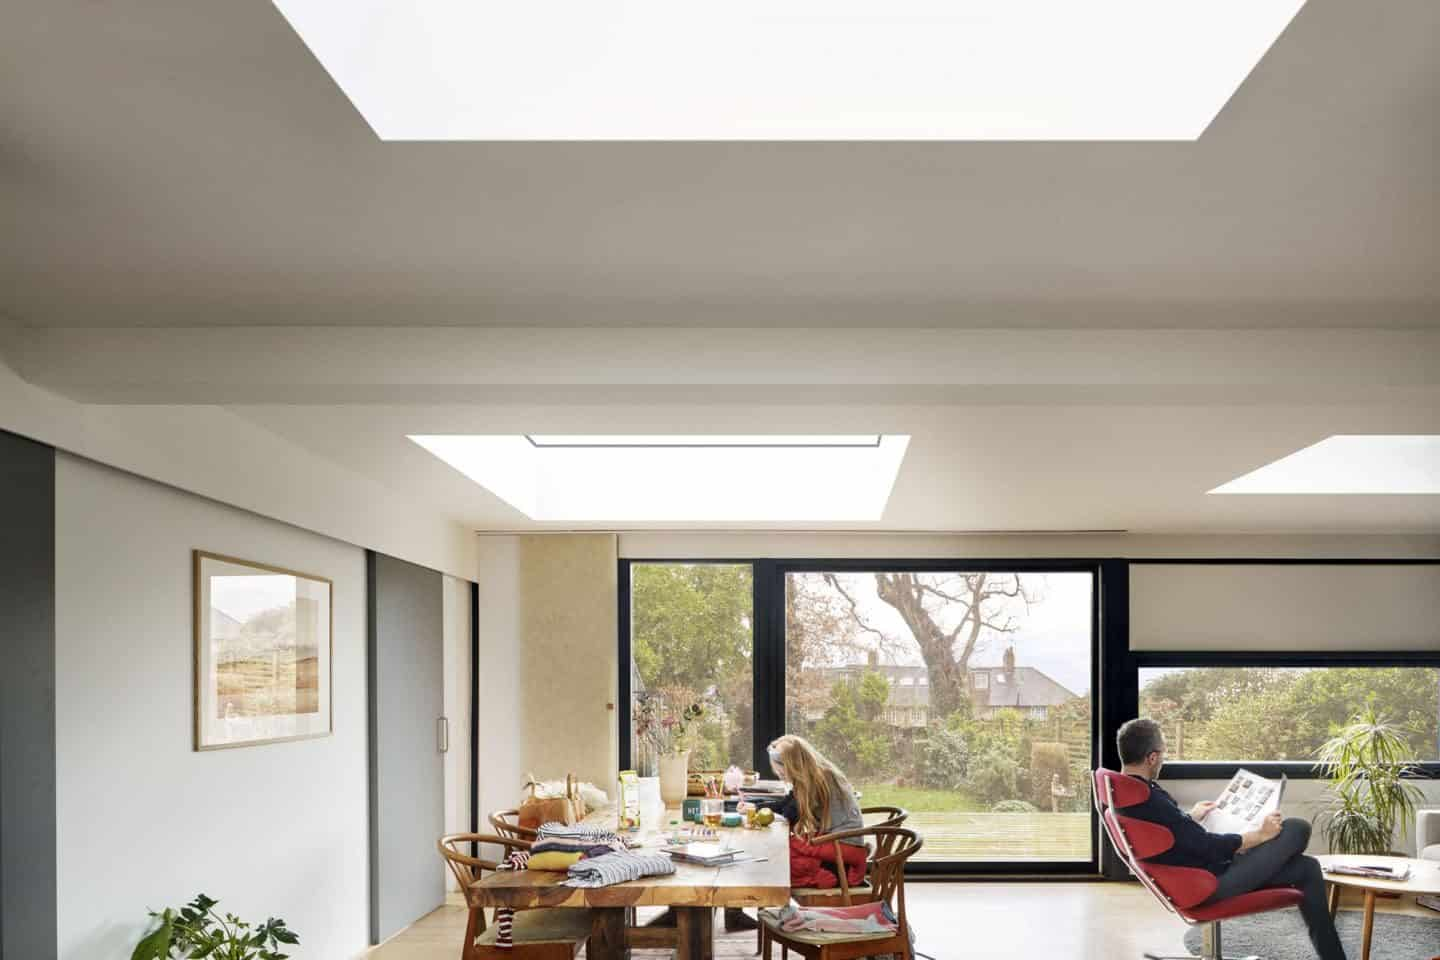 Vario by VELUX Bespoke Flat Roof Windows pictured above an open plan lounge diner